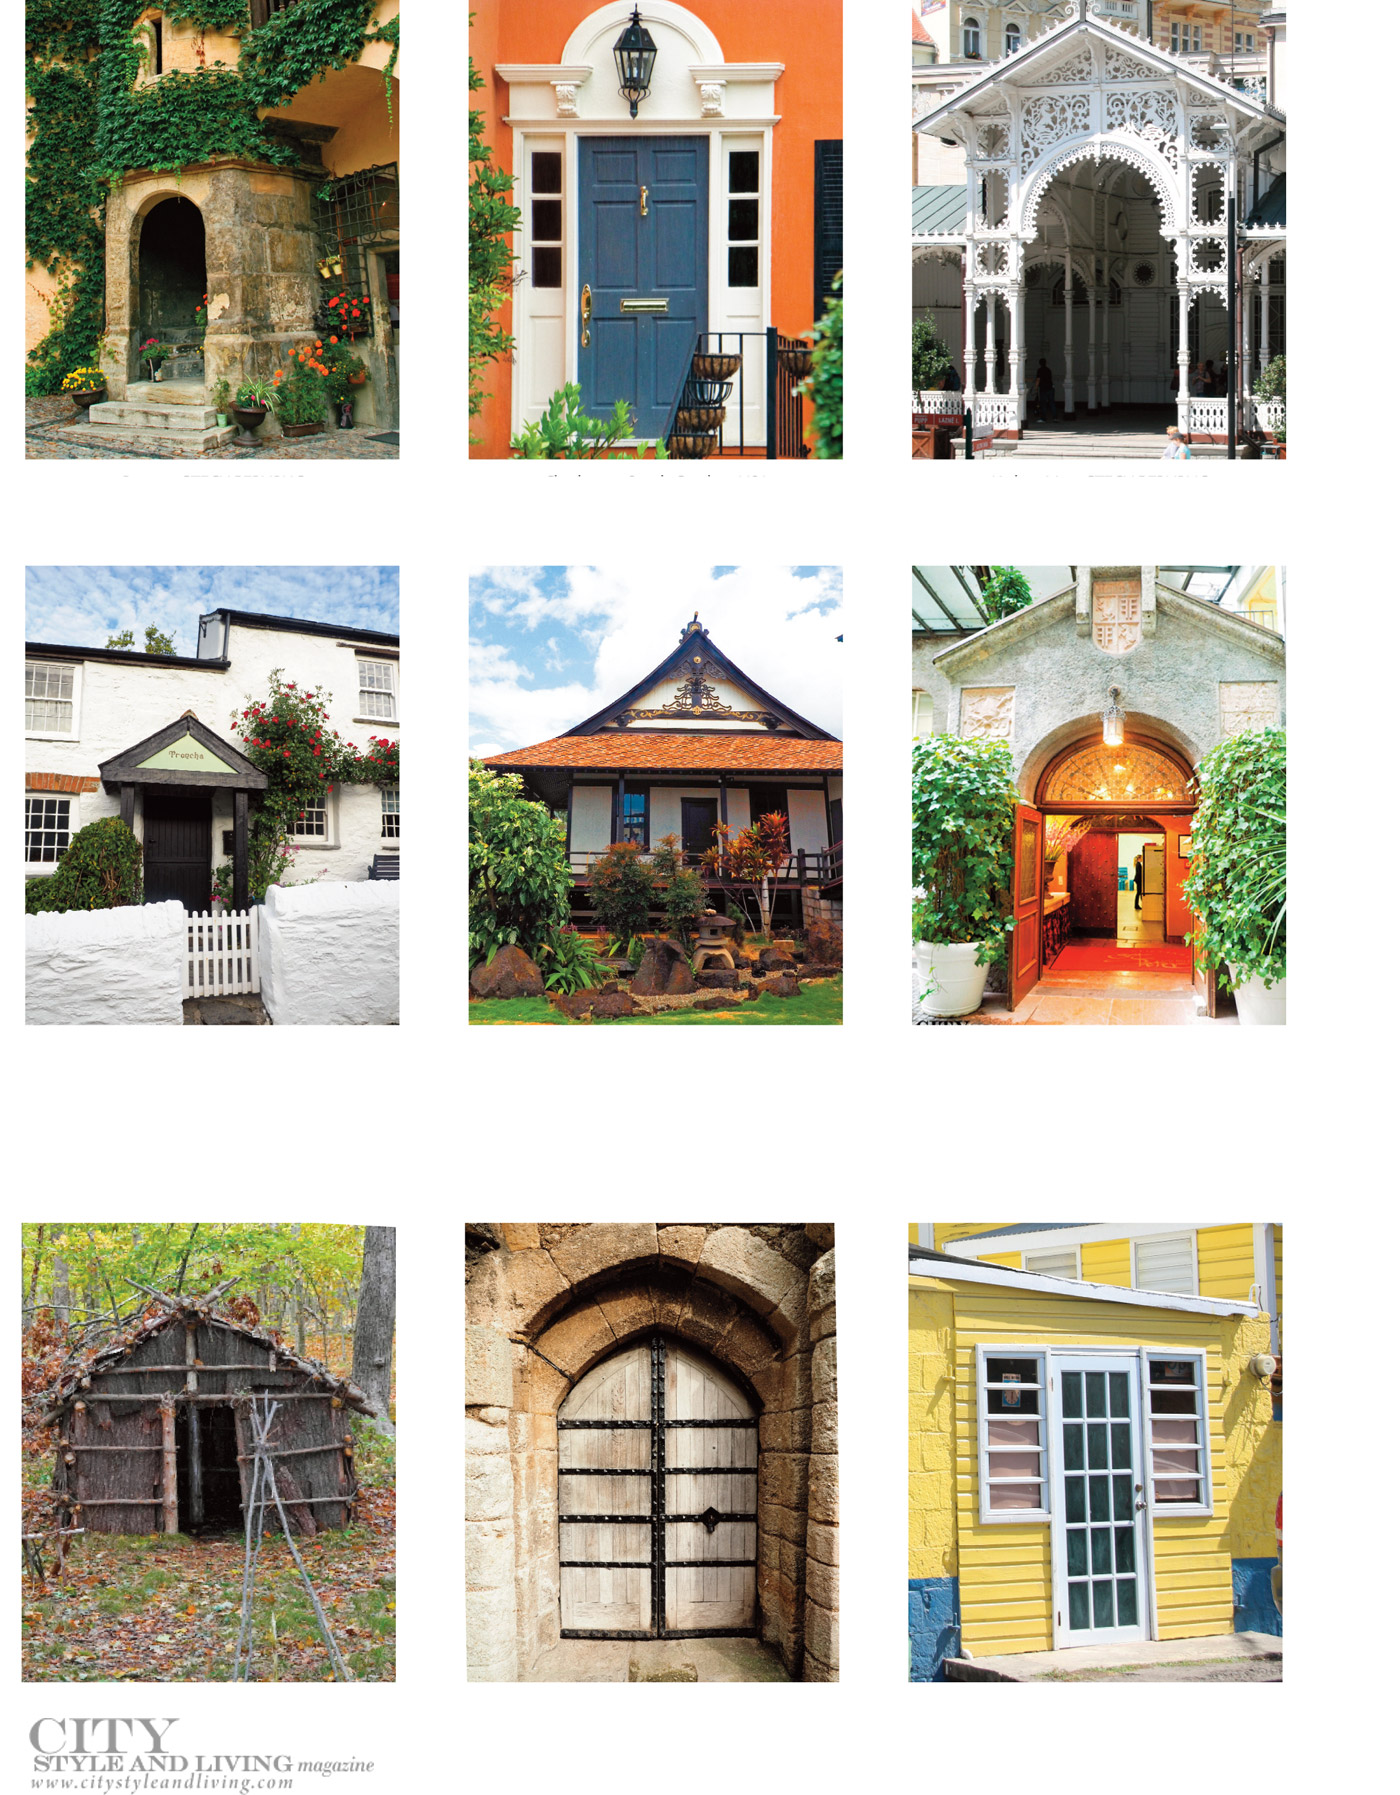 City Style and Living Magazine Winter 2020 A Glimpse at Entrances from Around the World